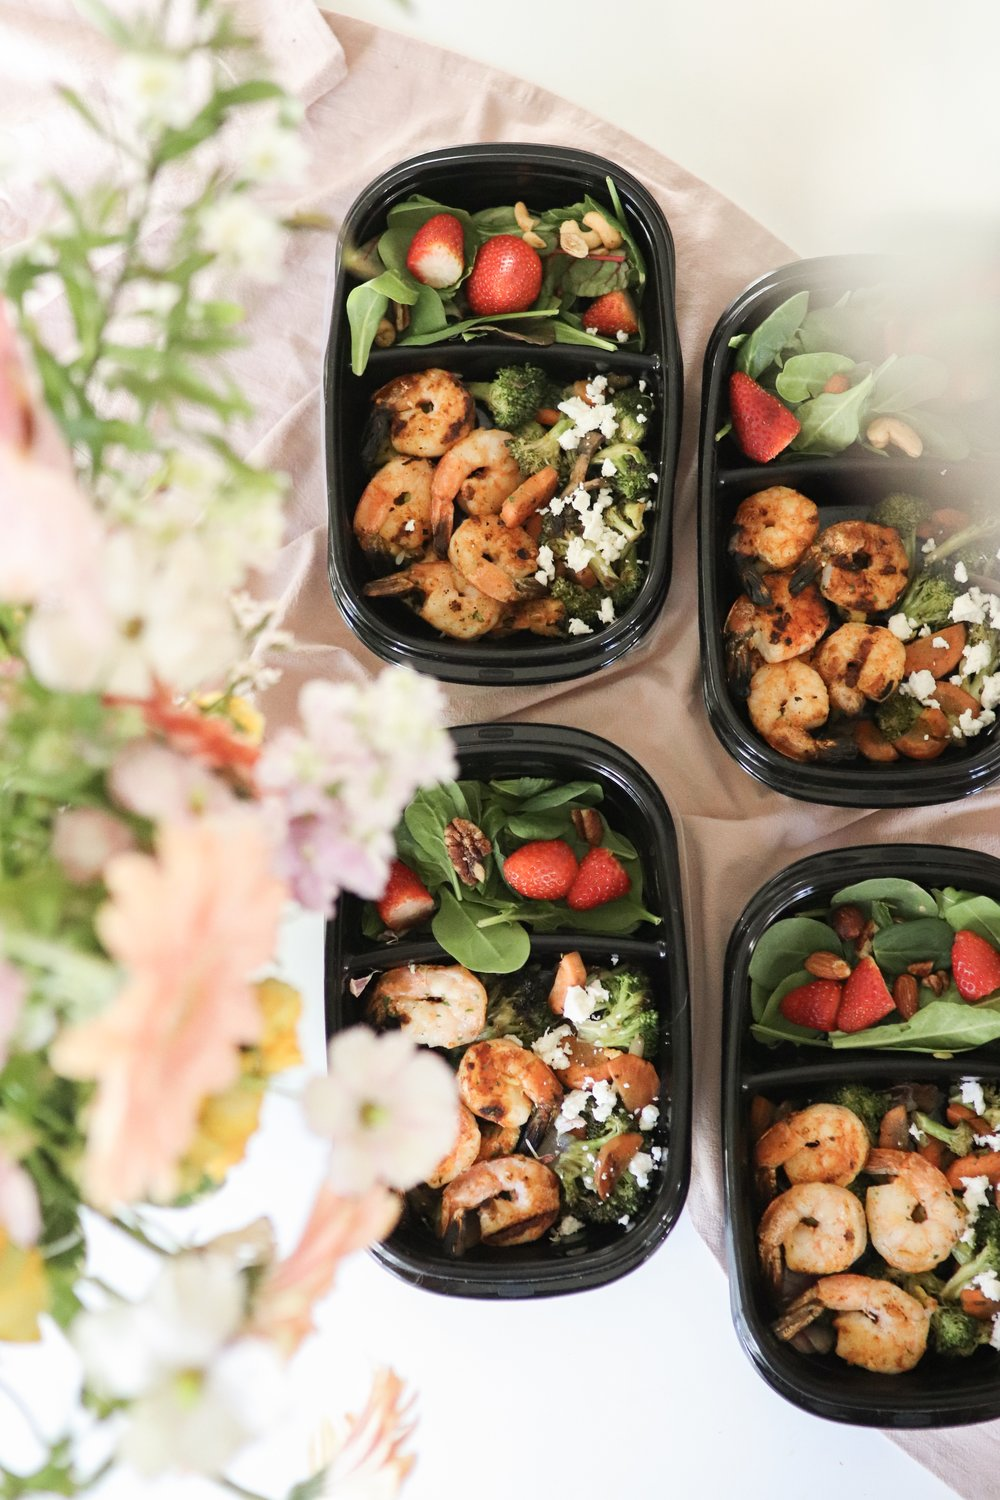 Joyfullygreen Rubbermaid Meal Prep Grilled Shrimp Clean Eating Recipe-01.jpg